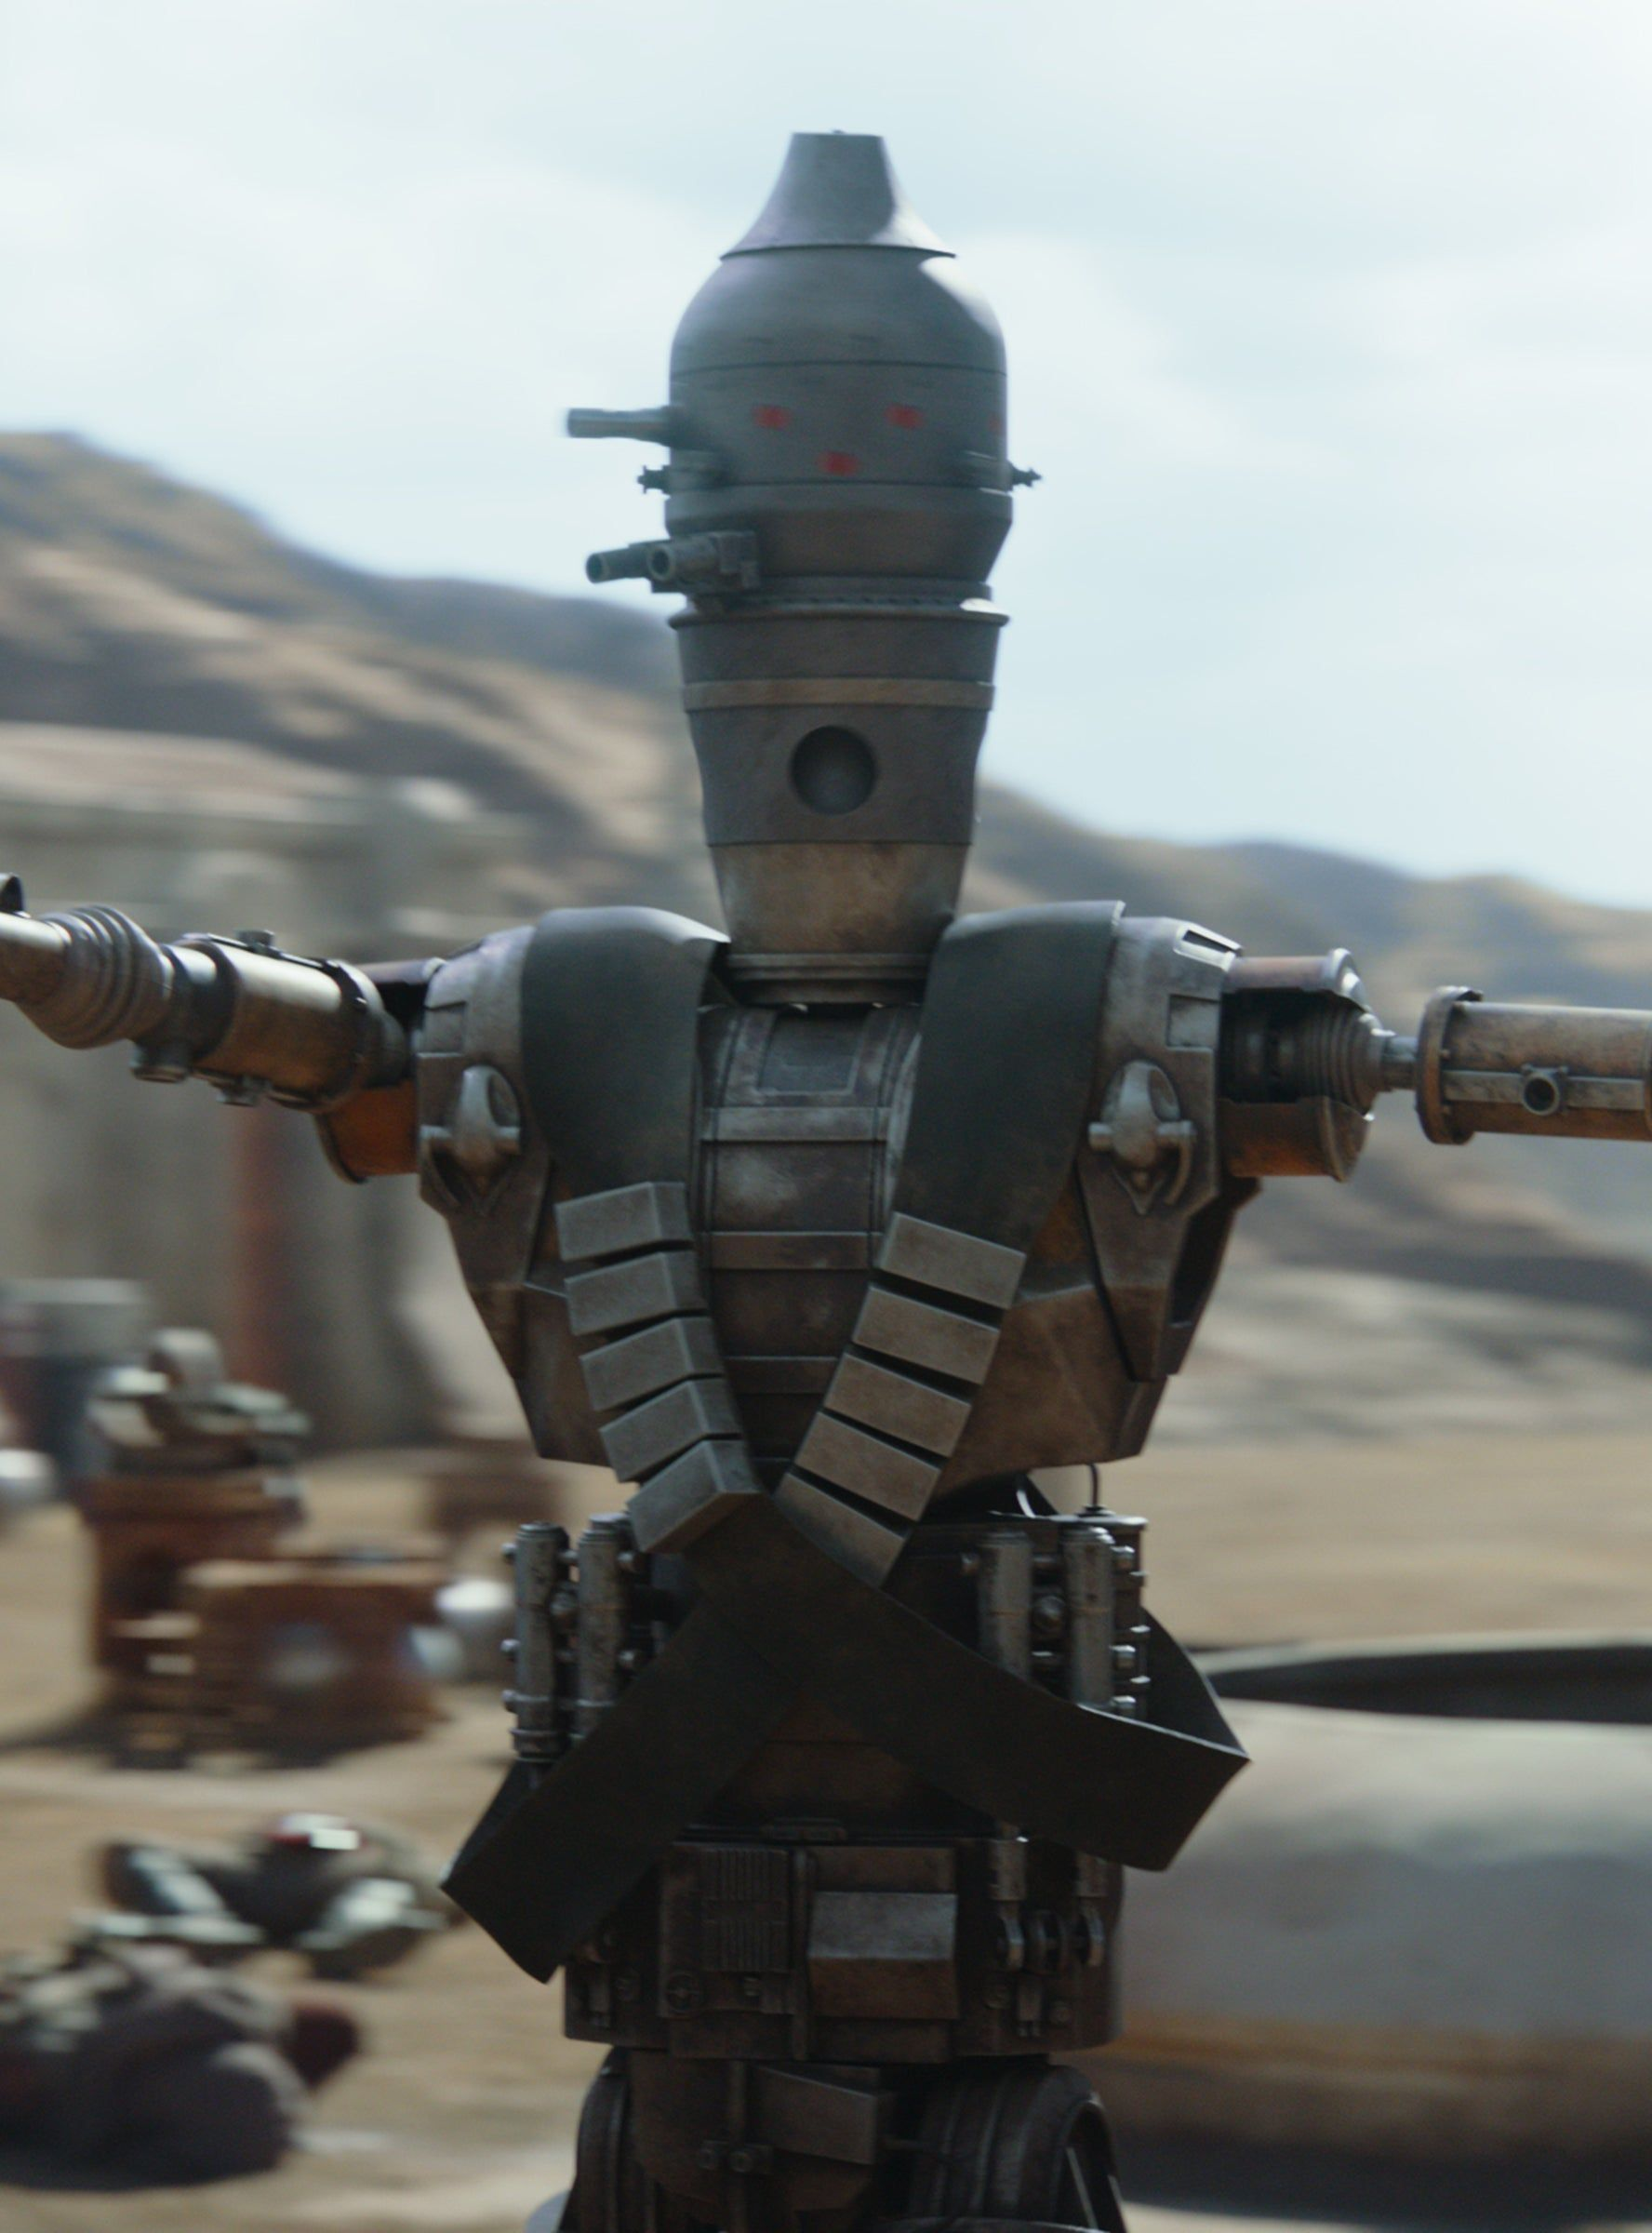 What Is Up With That Droid Twist On The Mandalorian Mandalorian Droids New Star Wars